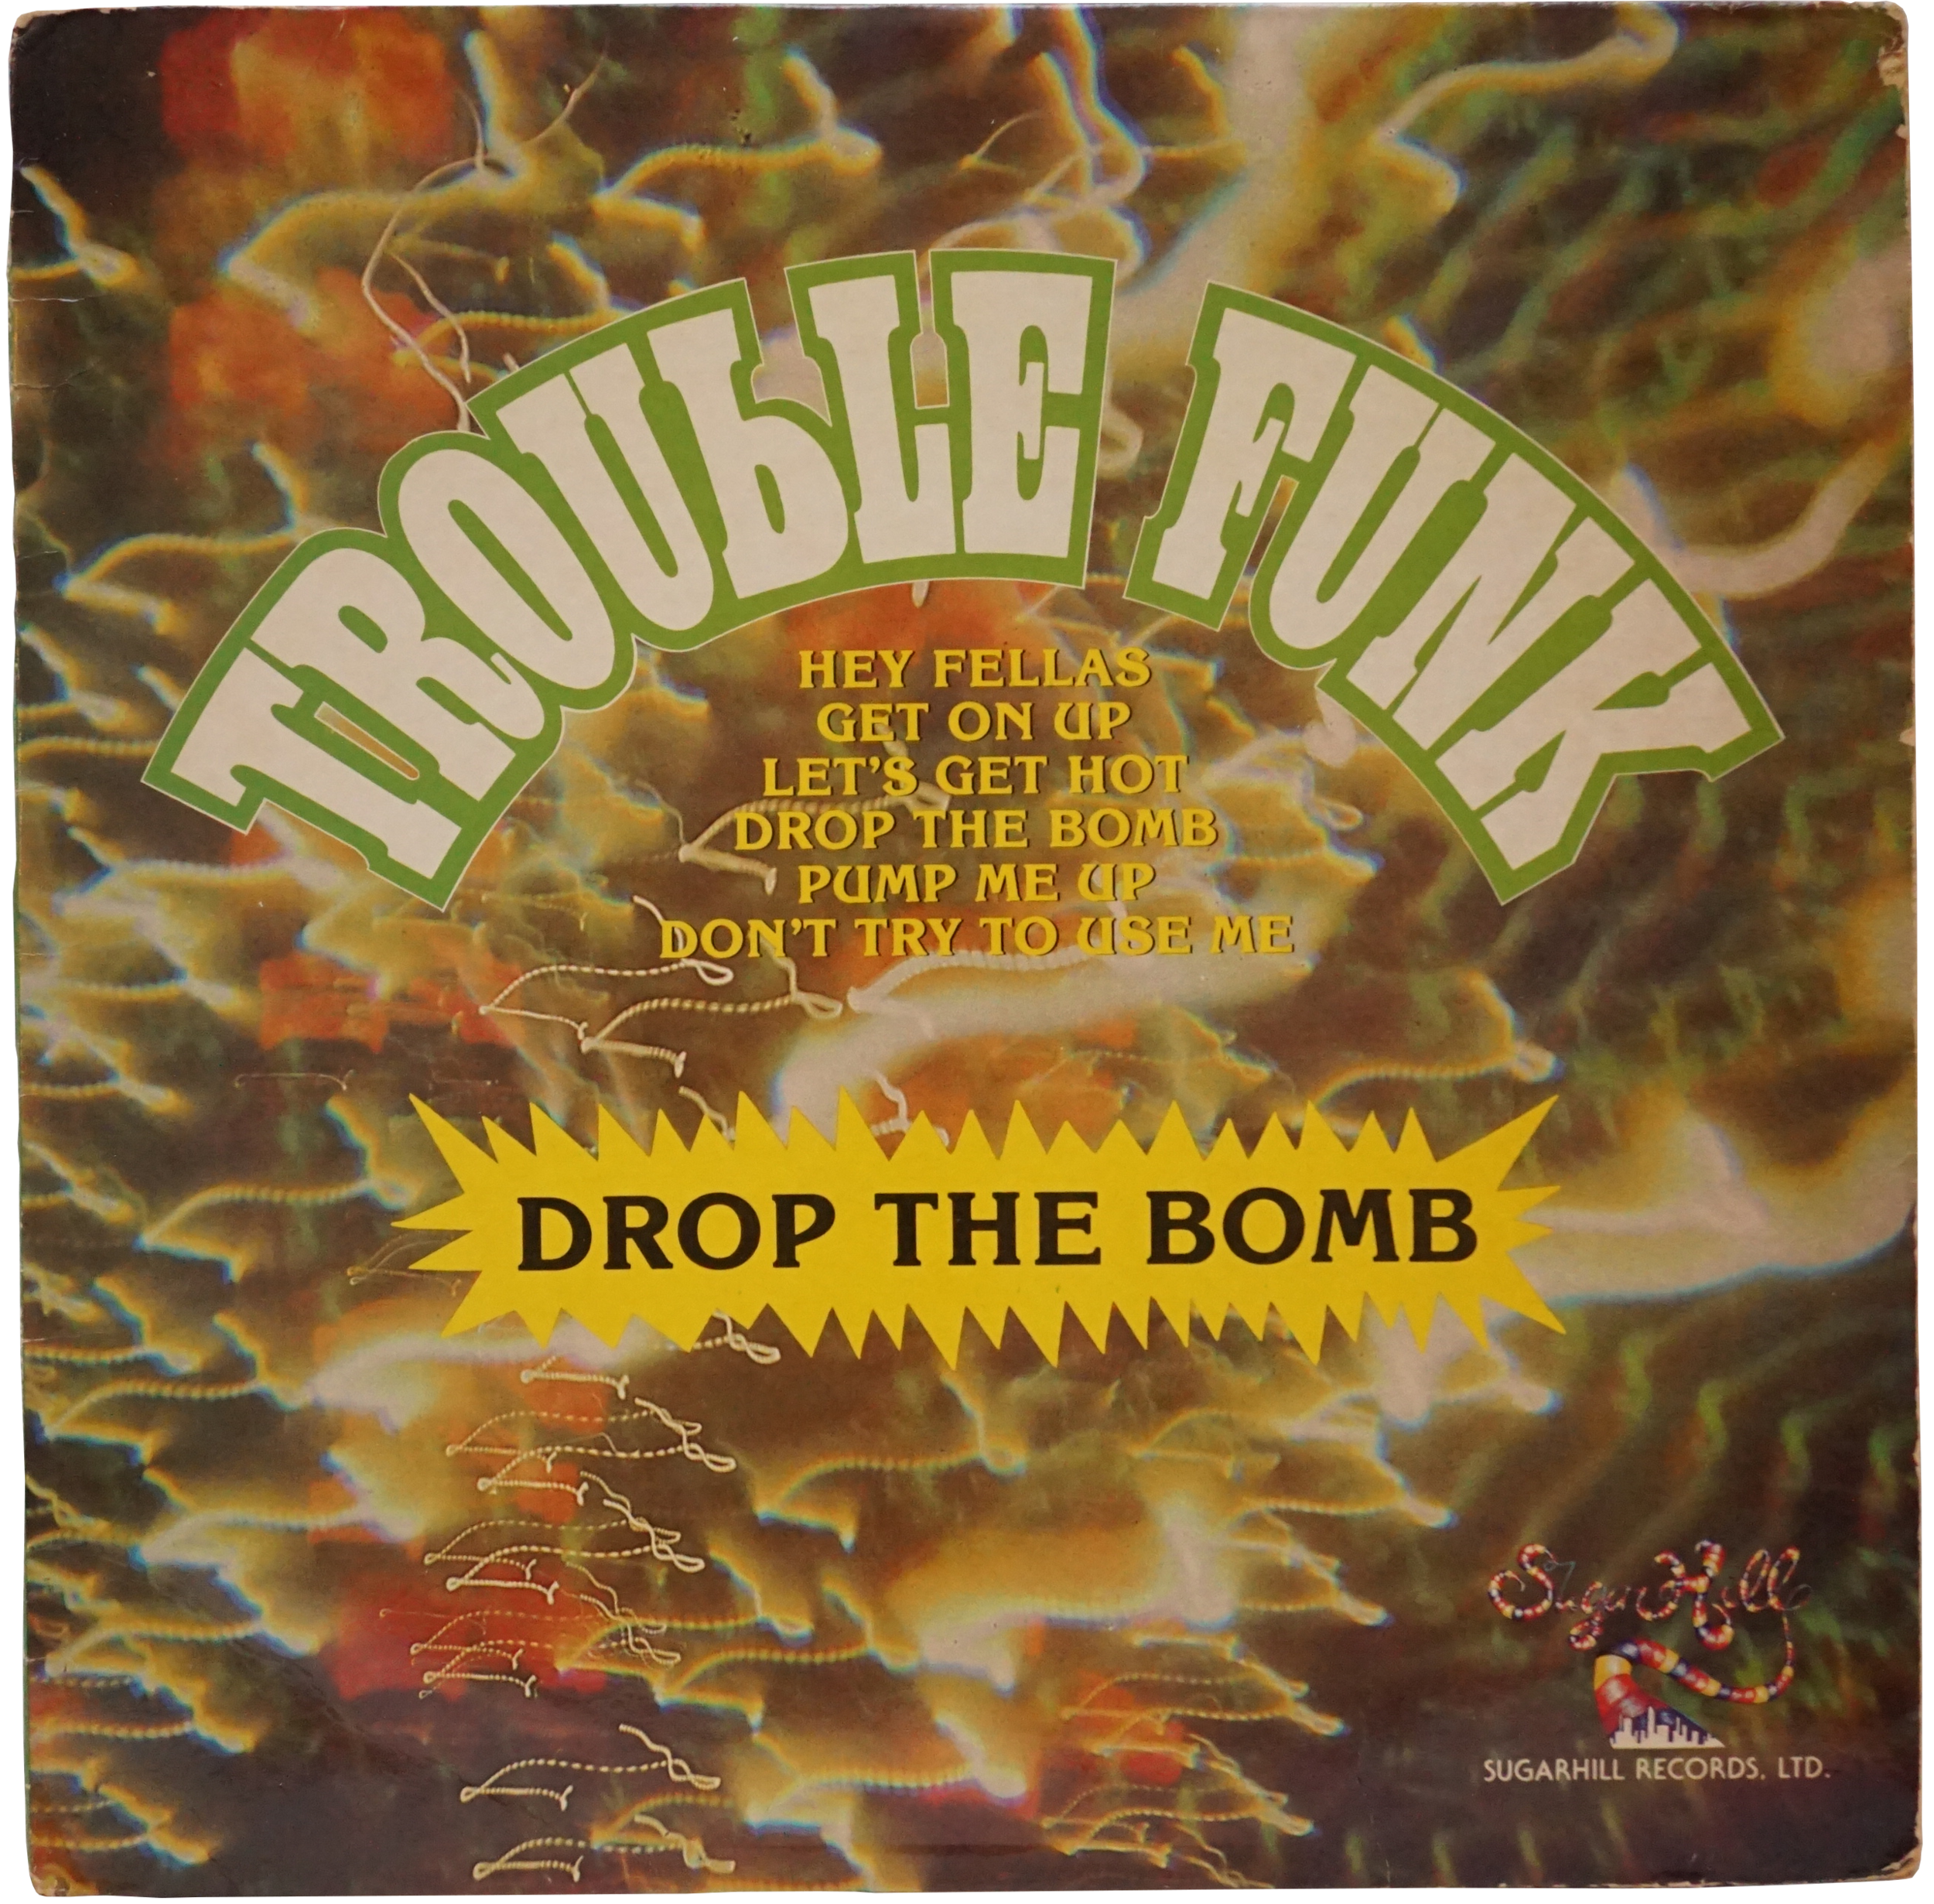 WLWLTDOO-1982-12-TROUBLE_FUNK-DROP_THE_BOMB-FRONT-SH266.png